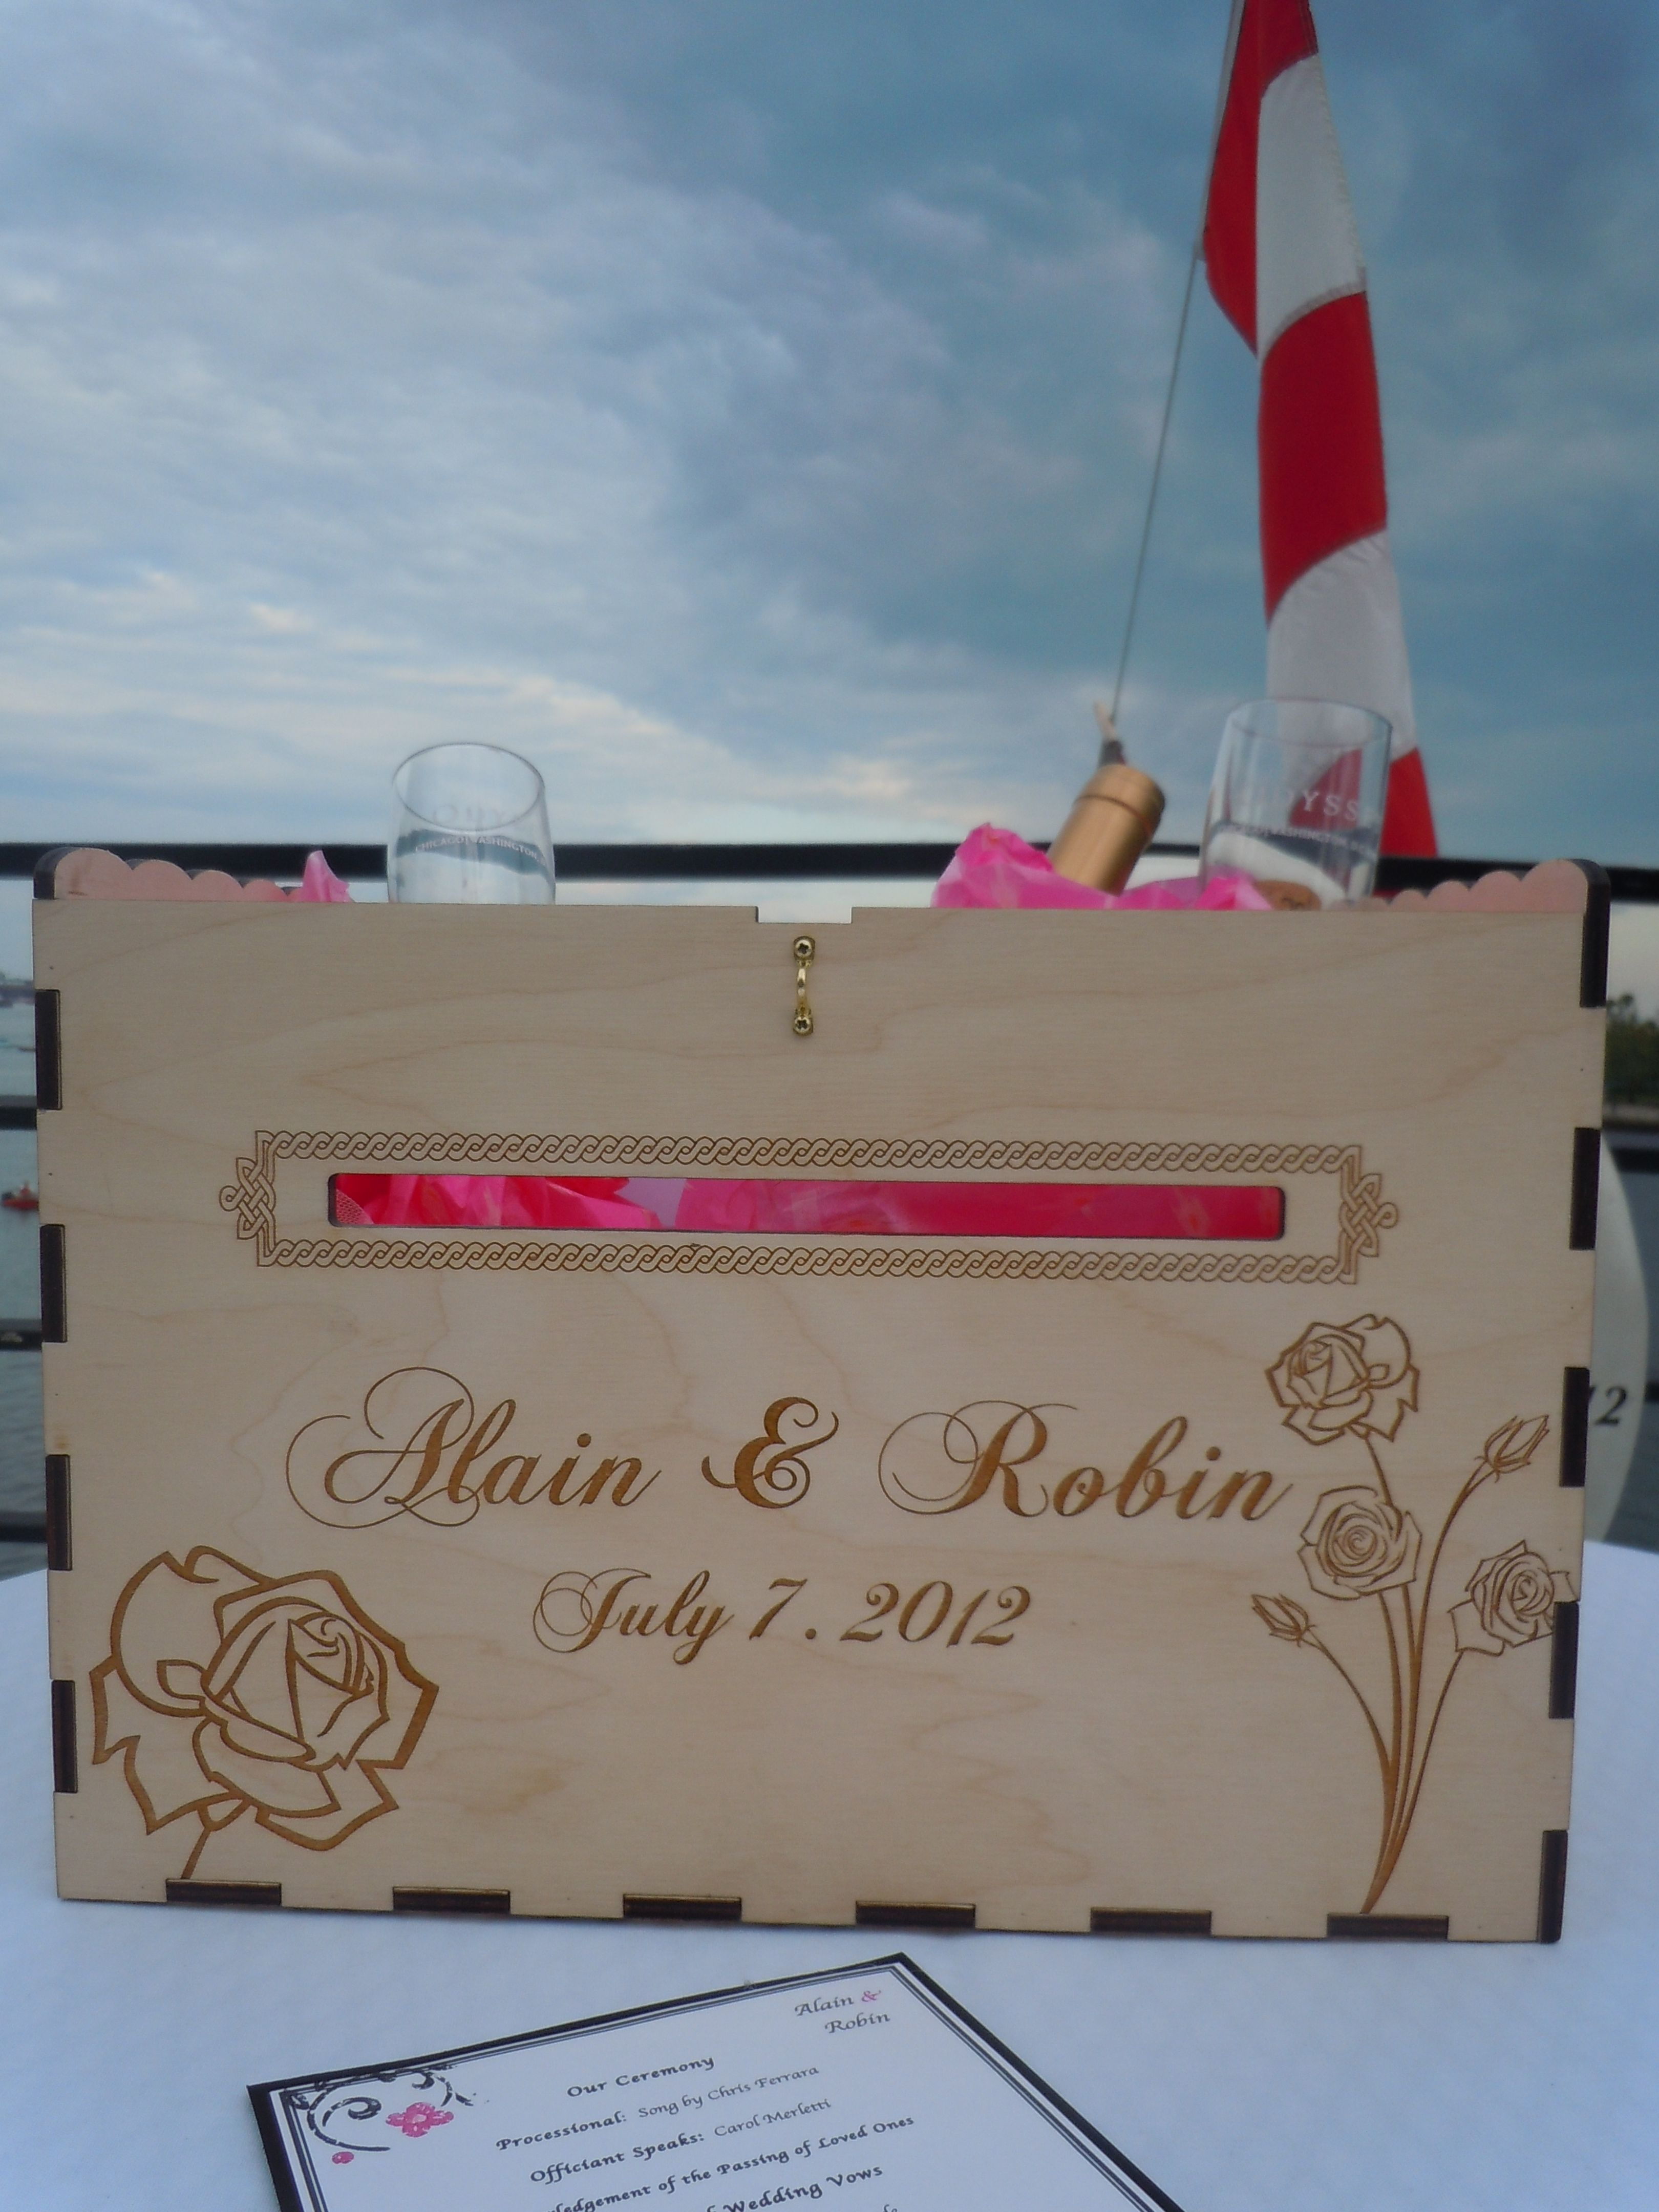 The couple incorporated the Wine Box and Love Letter Ceremony